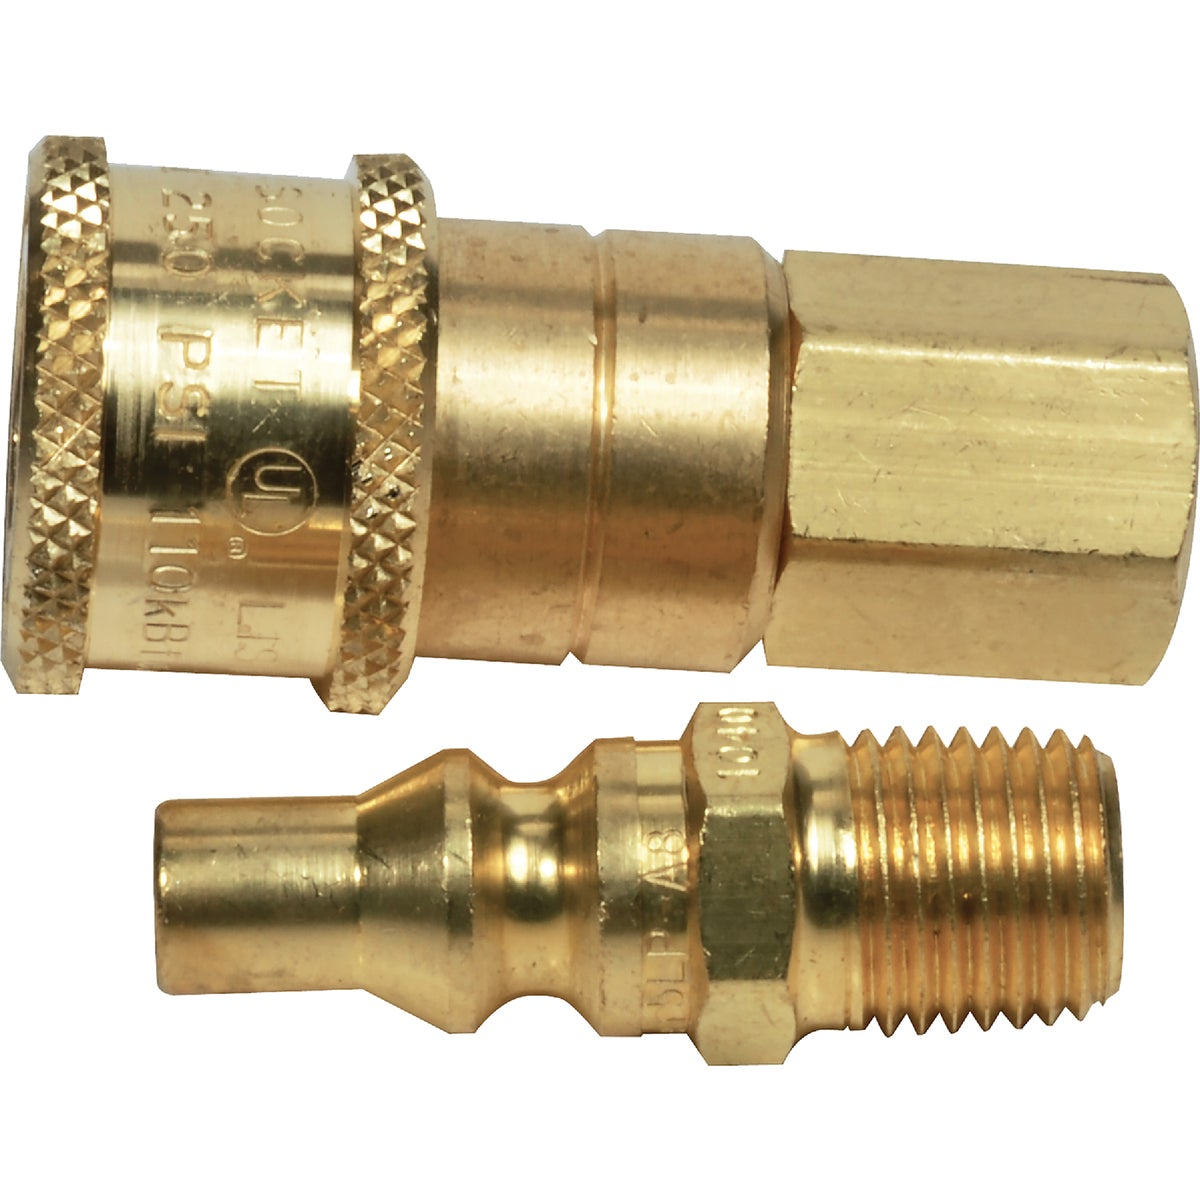 QUICK GAS CONNECTOR